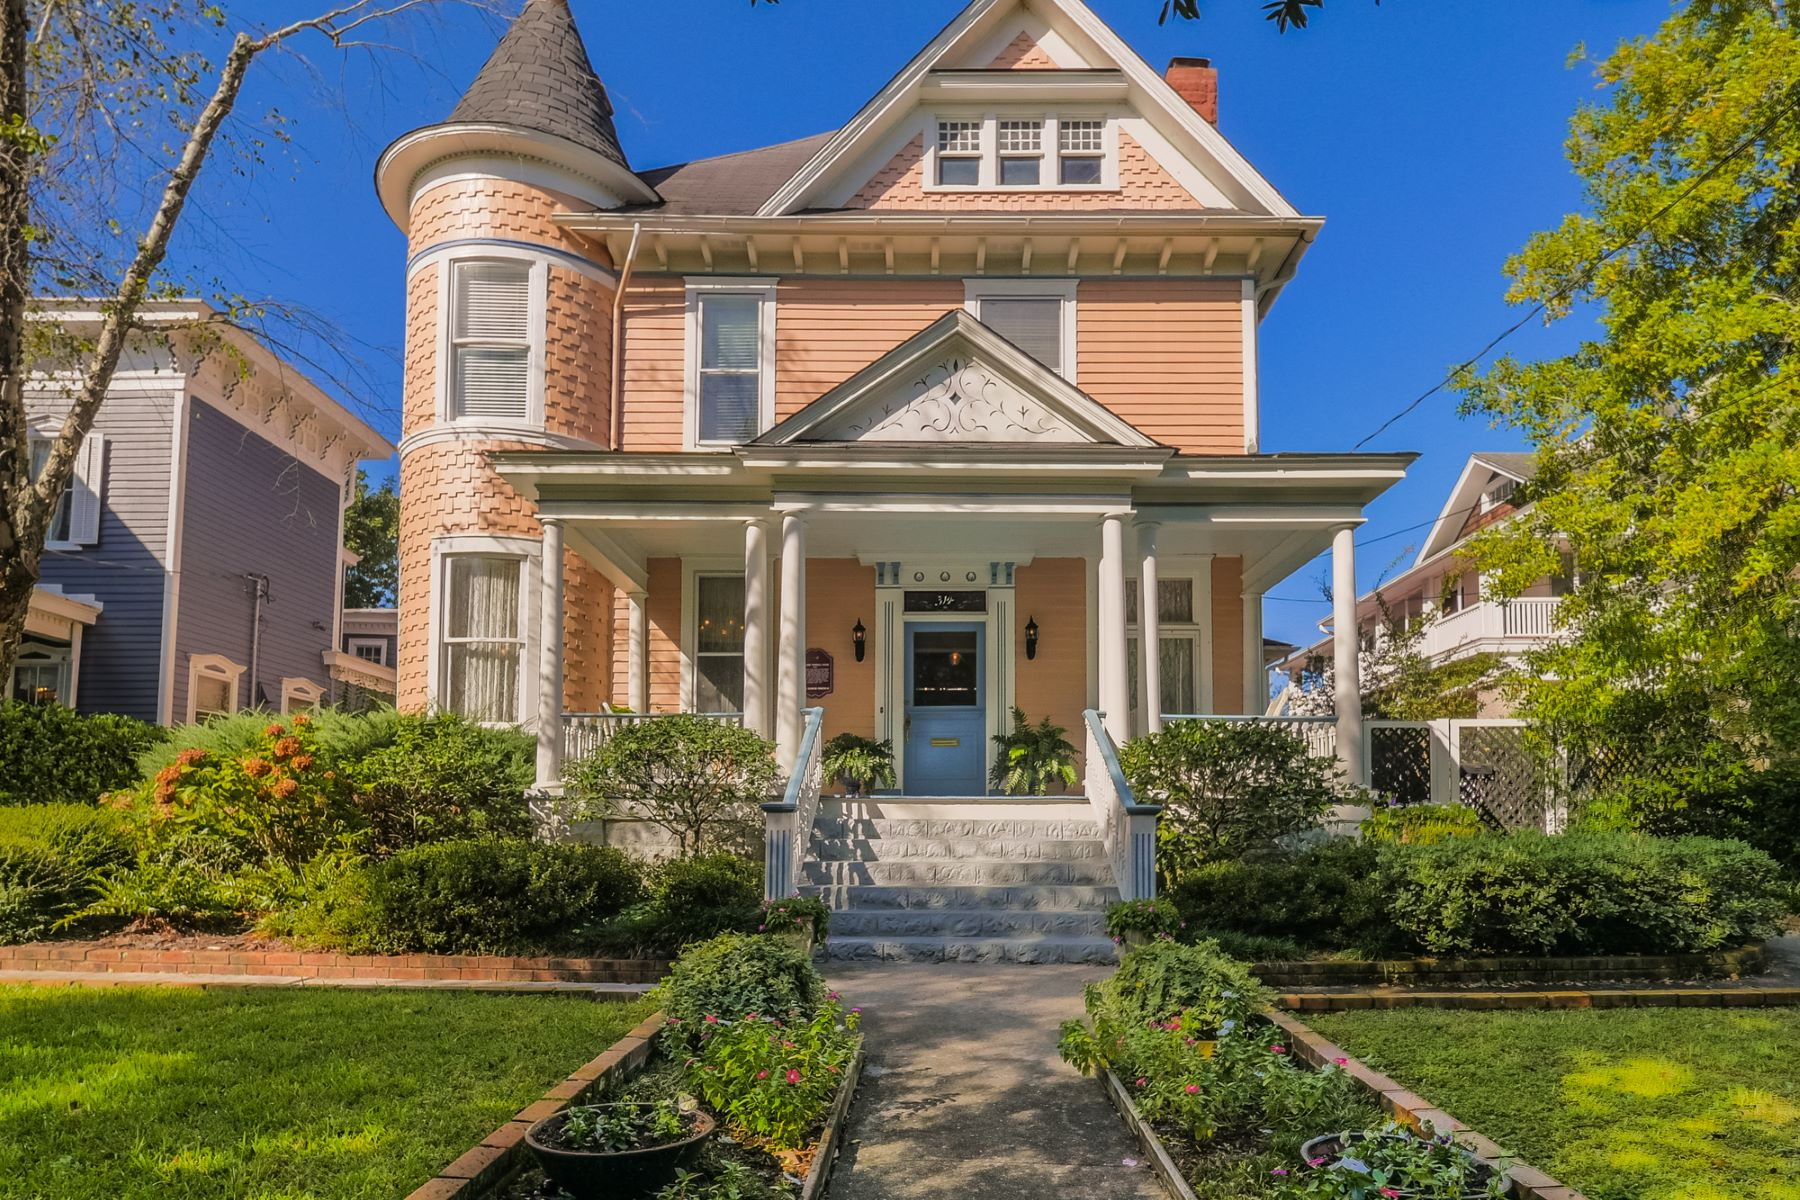 Single Family Home for Sale at Spectacular Historic Riverfront Home 314 S Front St, Wilmington, North Carolina, 28401 United States